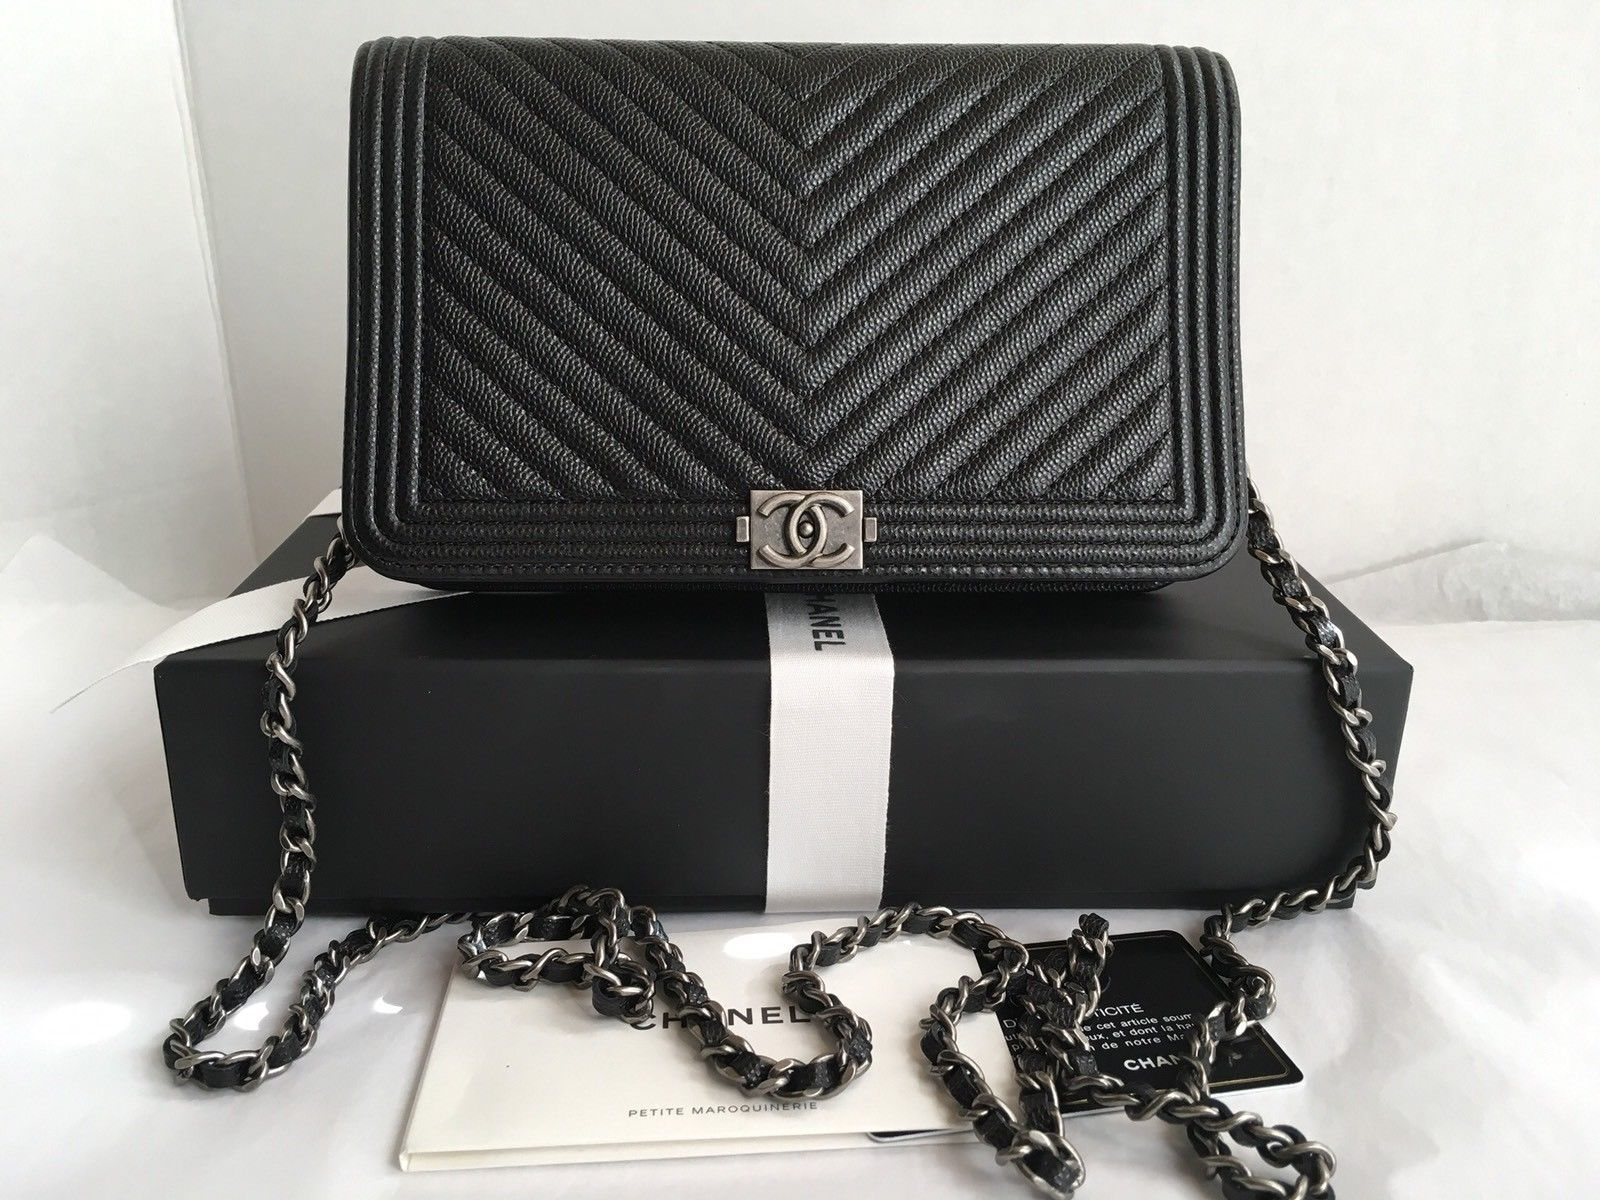 auth bnib chanel boy woc black chevron wallet on a chain. Black Bedroom Furniture Sets. Home Design Ideas